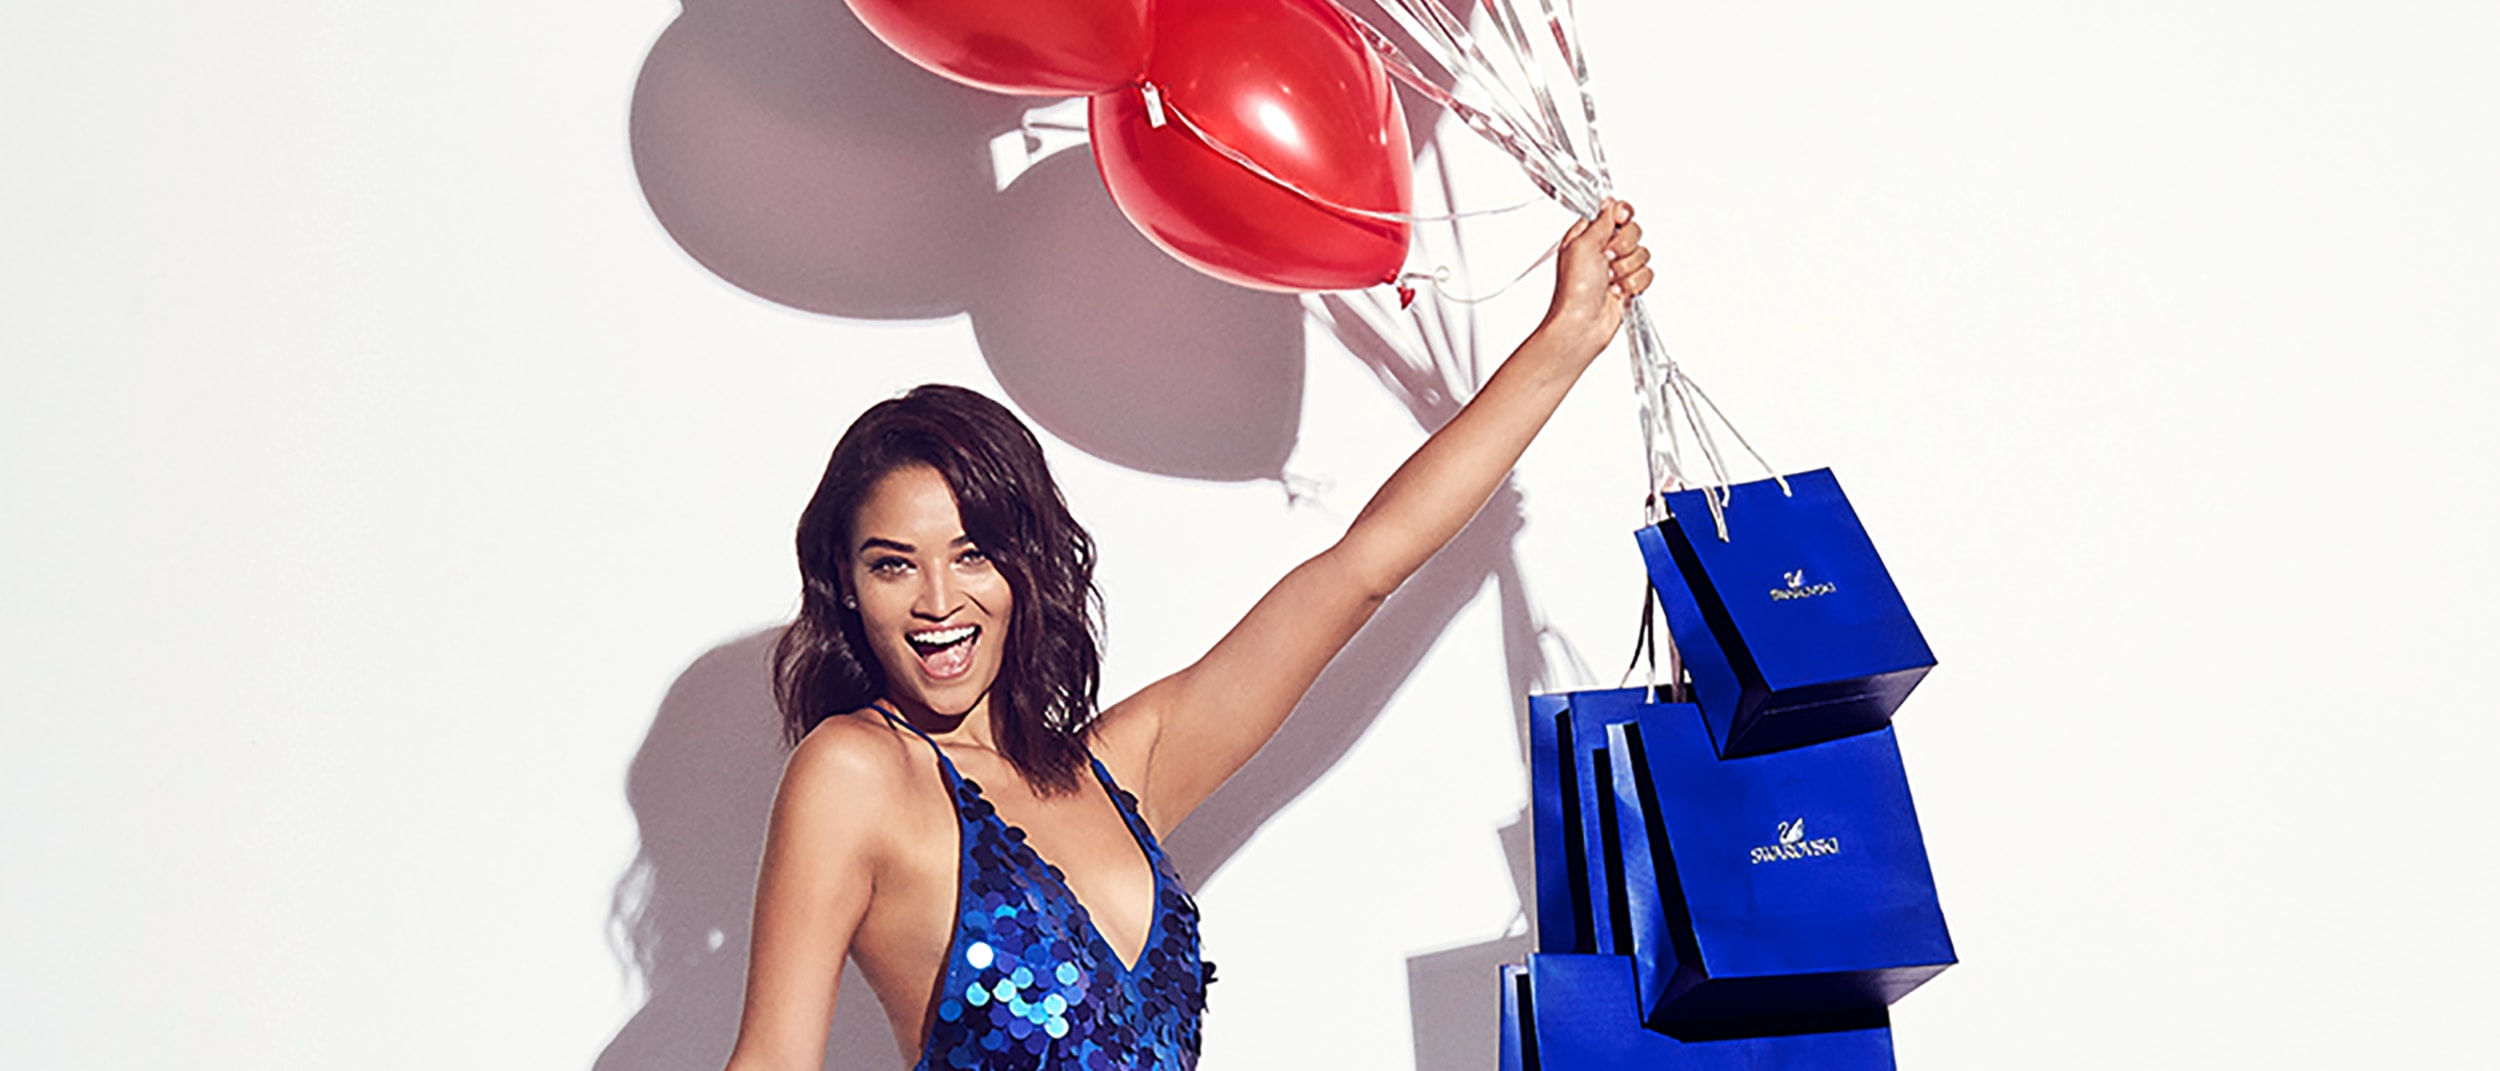 The Swarovski Sparkling Sale just got better